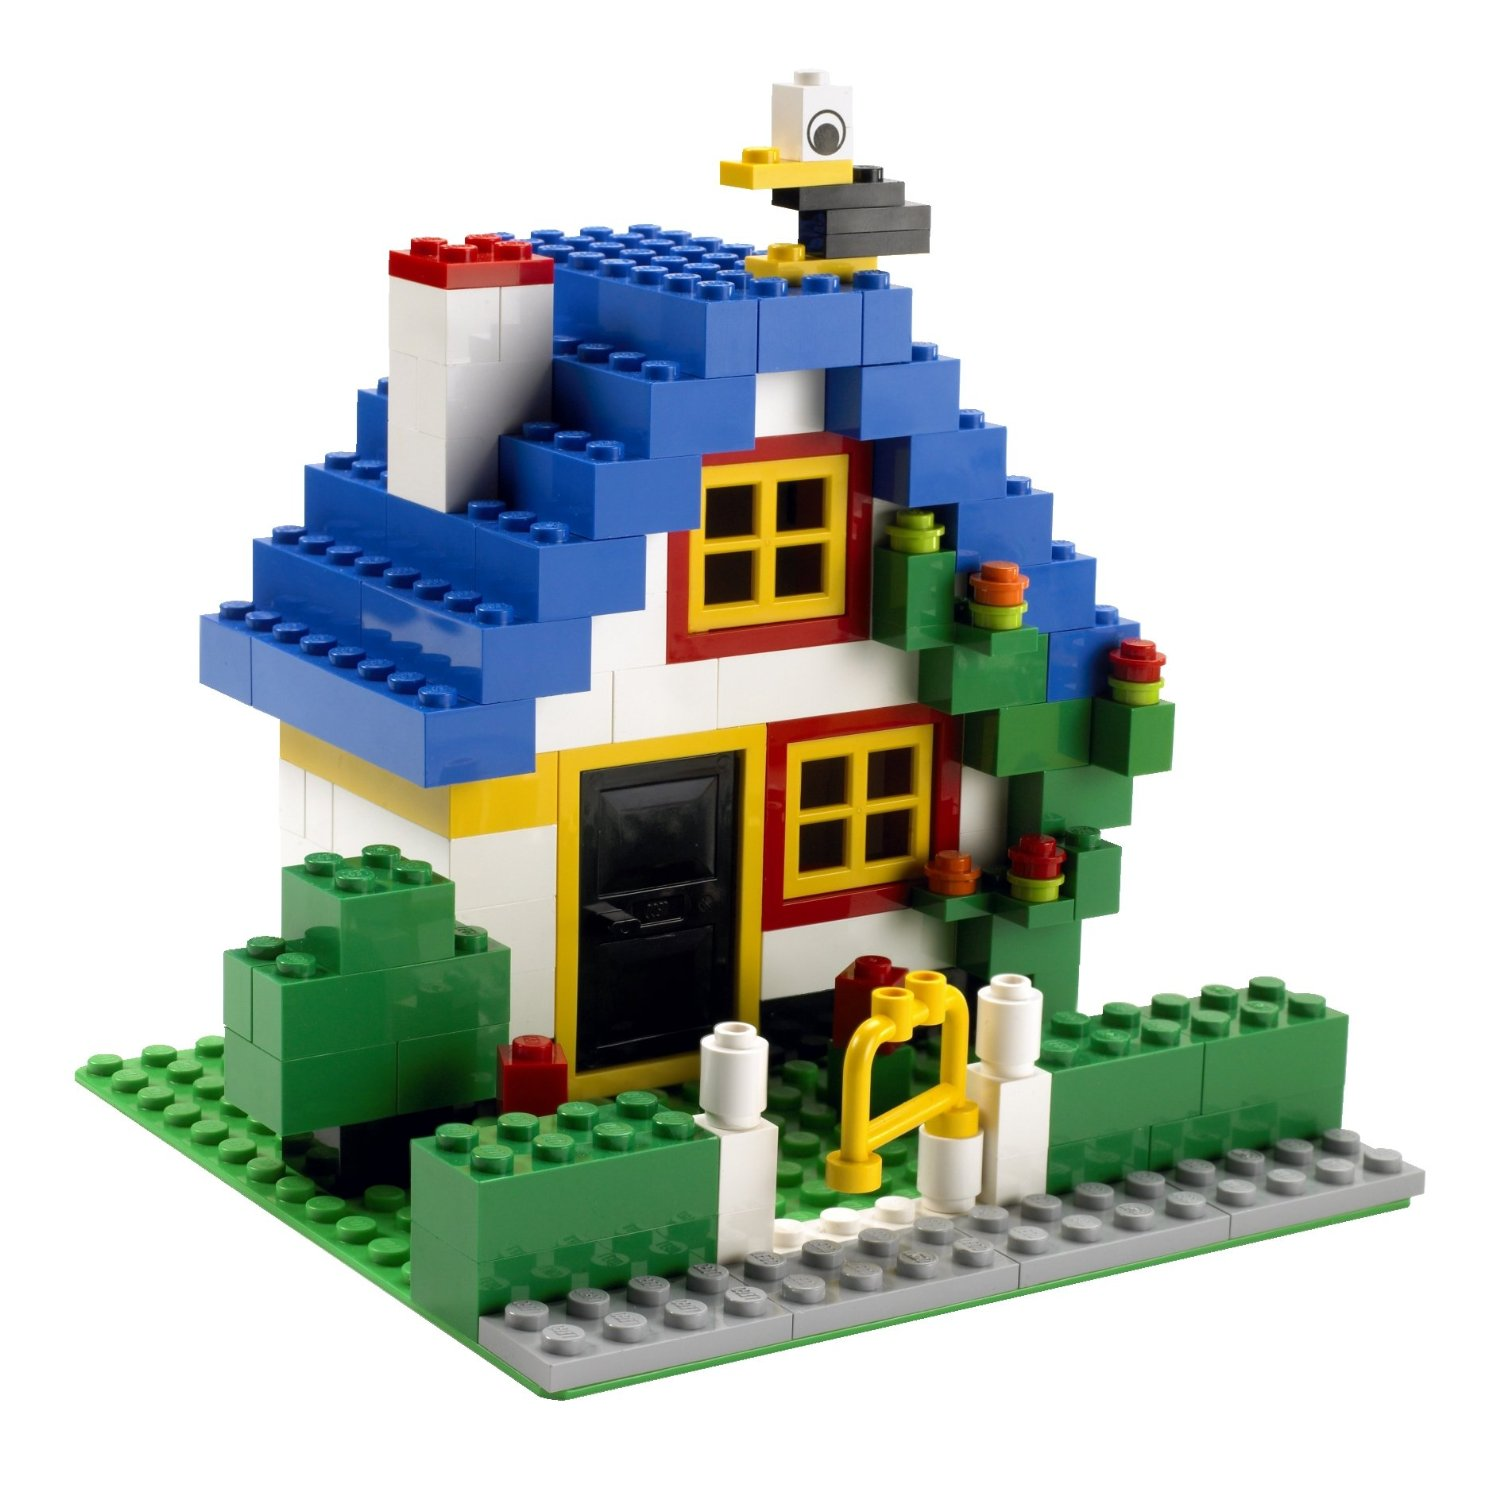 Easy Lego House Instructions They Are Mattoncini Lego A Building